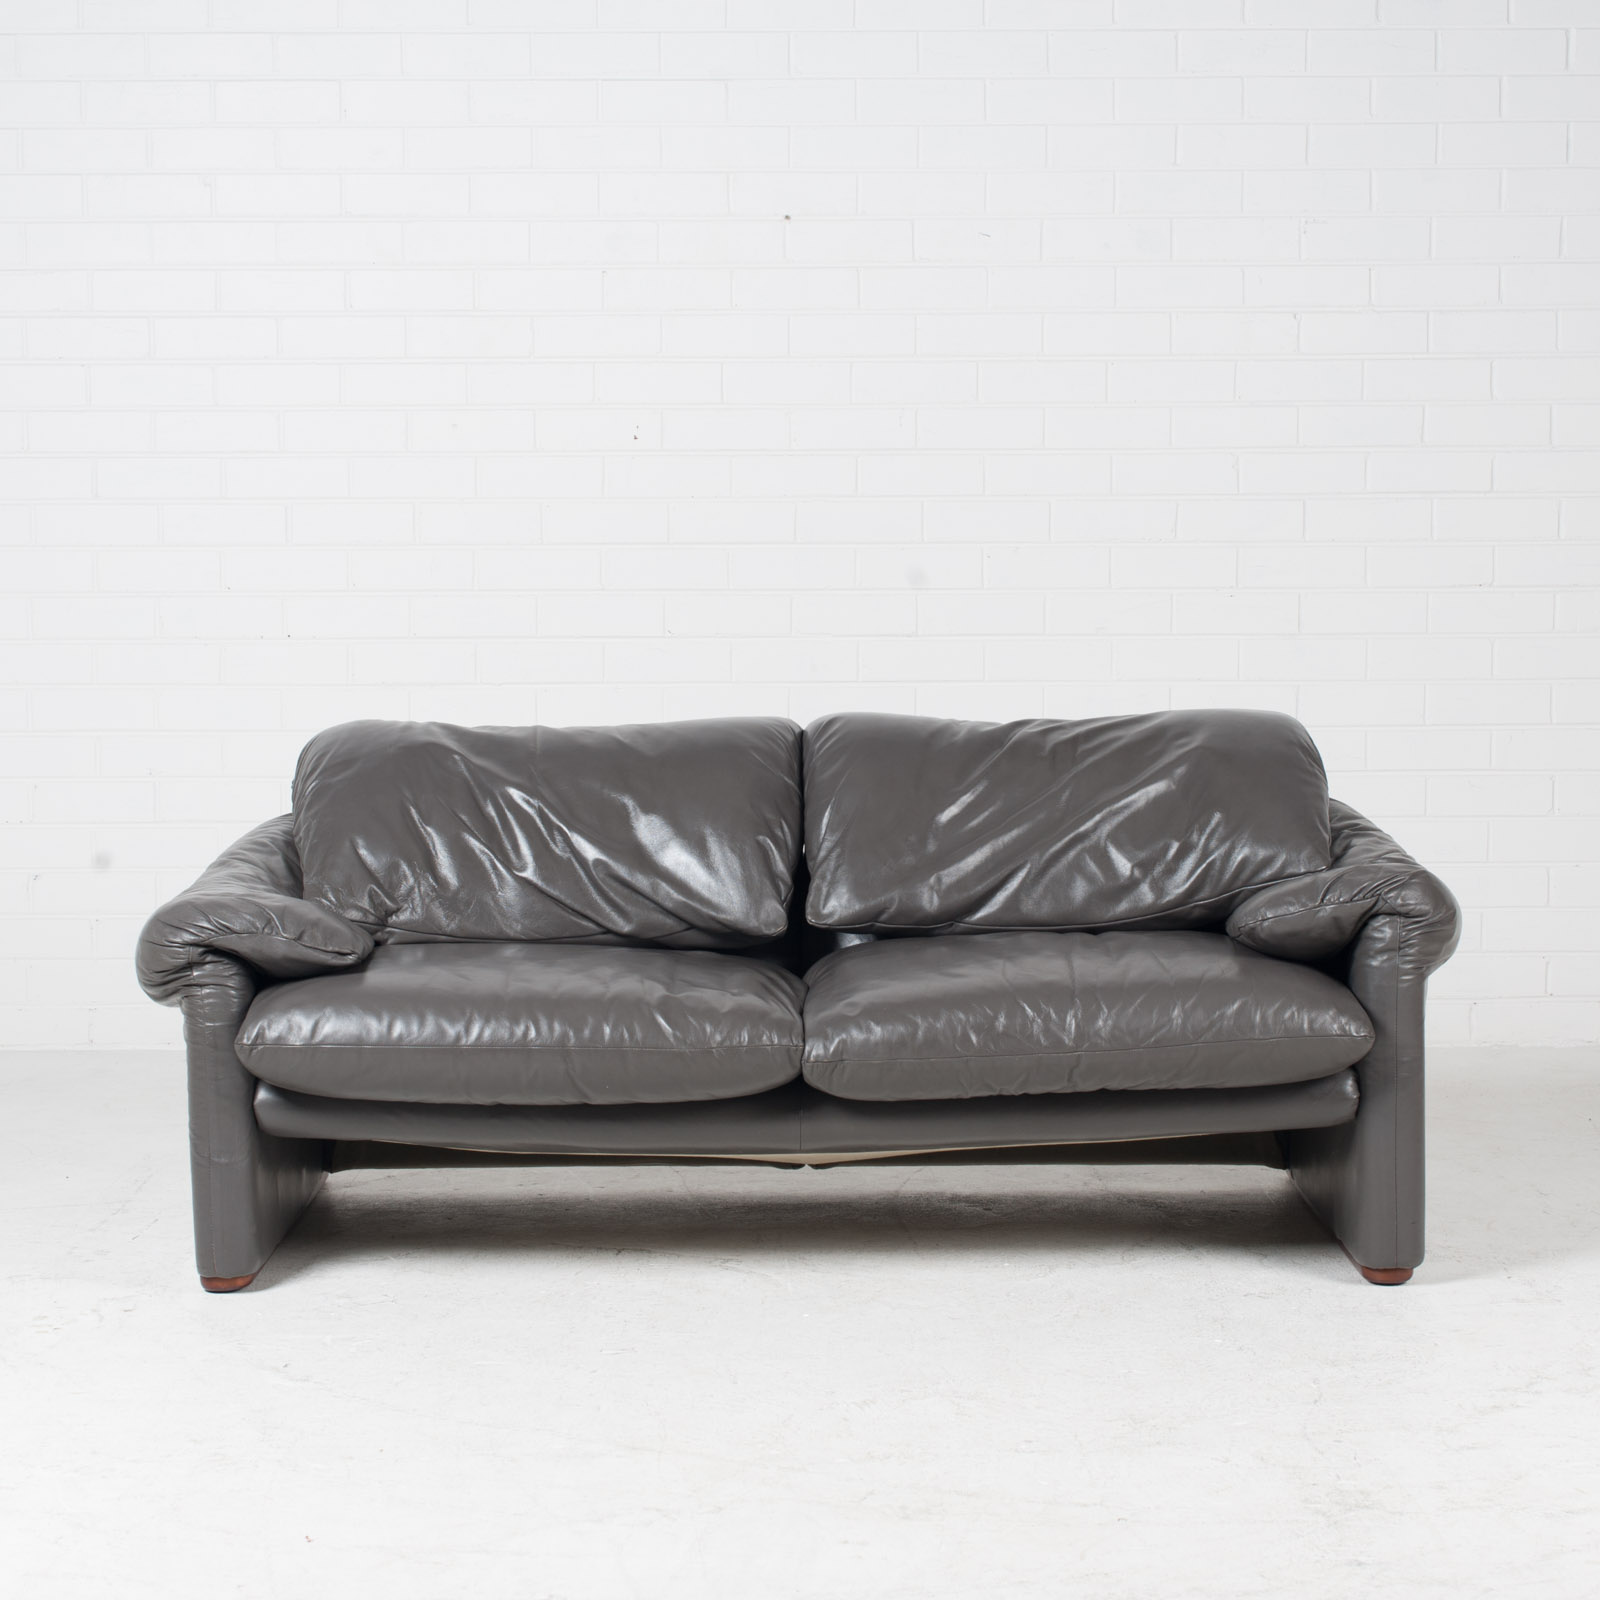 Maralunga 3 Seat Sofa By Vico Magistretti For Cassina In Grey Leather 1970s Italy 03 1.jpg